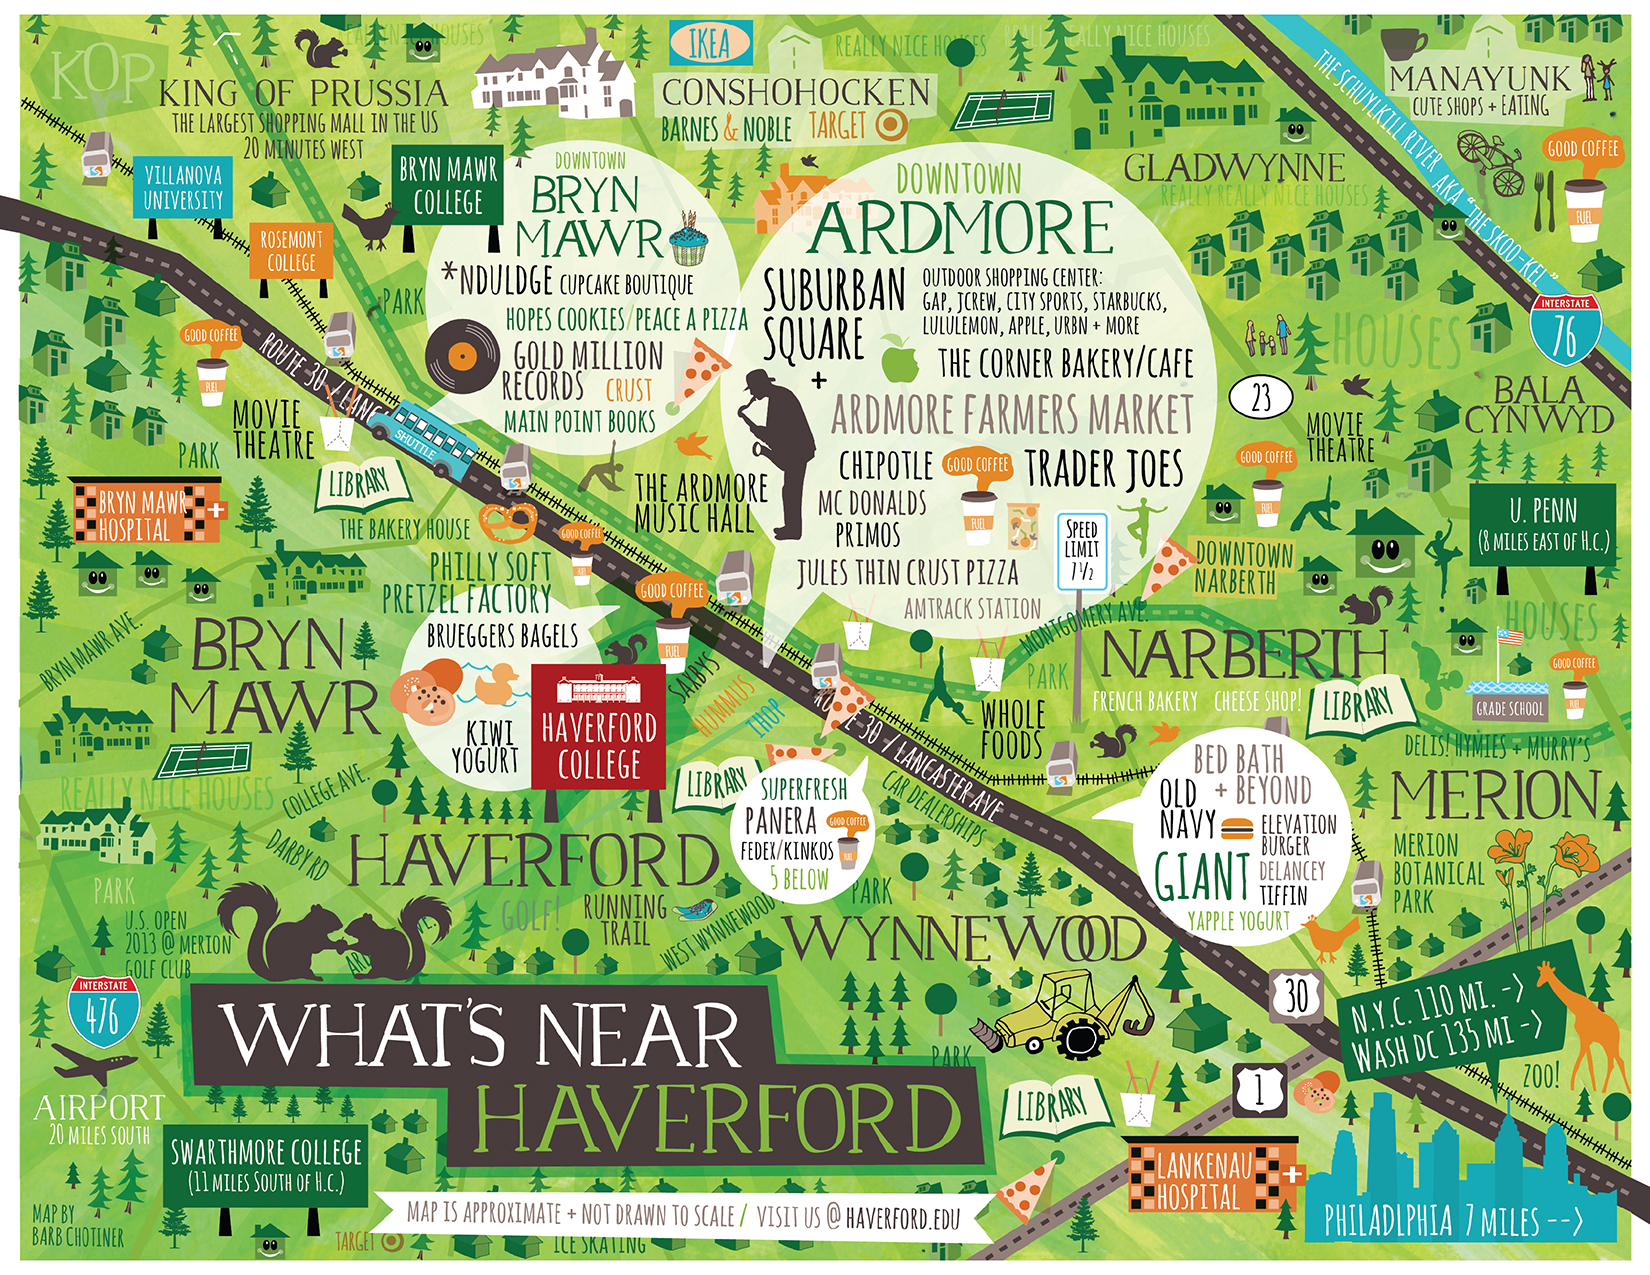 Map designed for Haverford College - Artwork by Barbara Chotiner